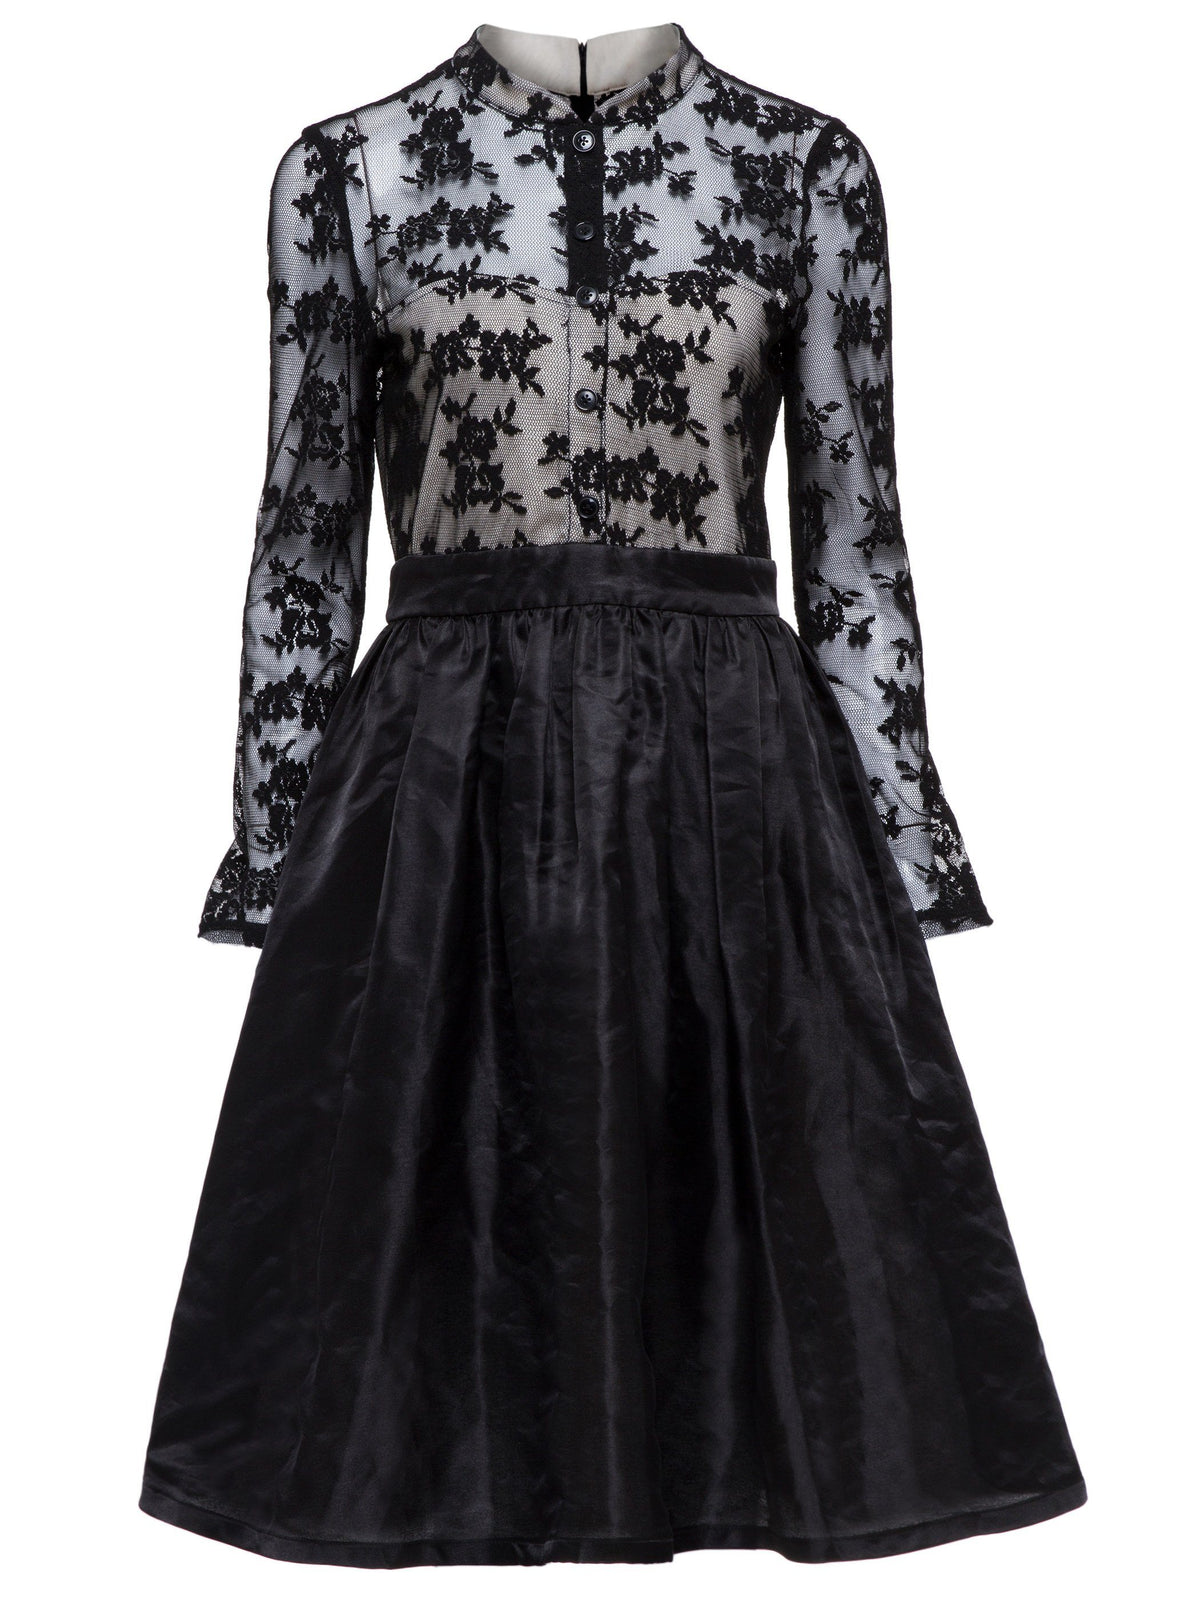 Gothic See-Through Lace Dress